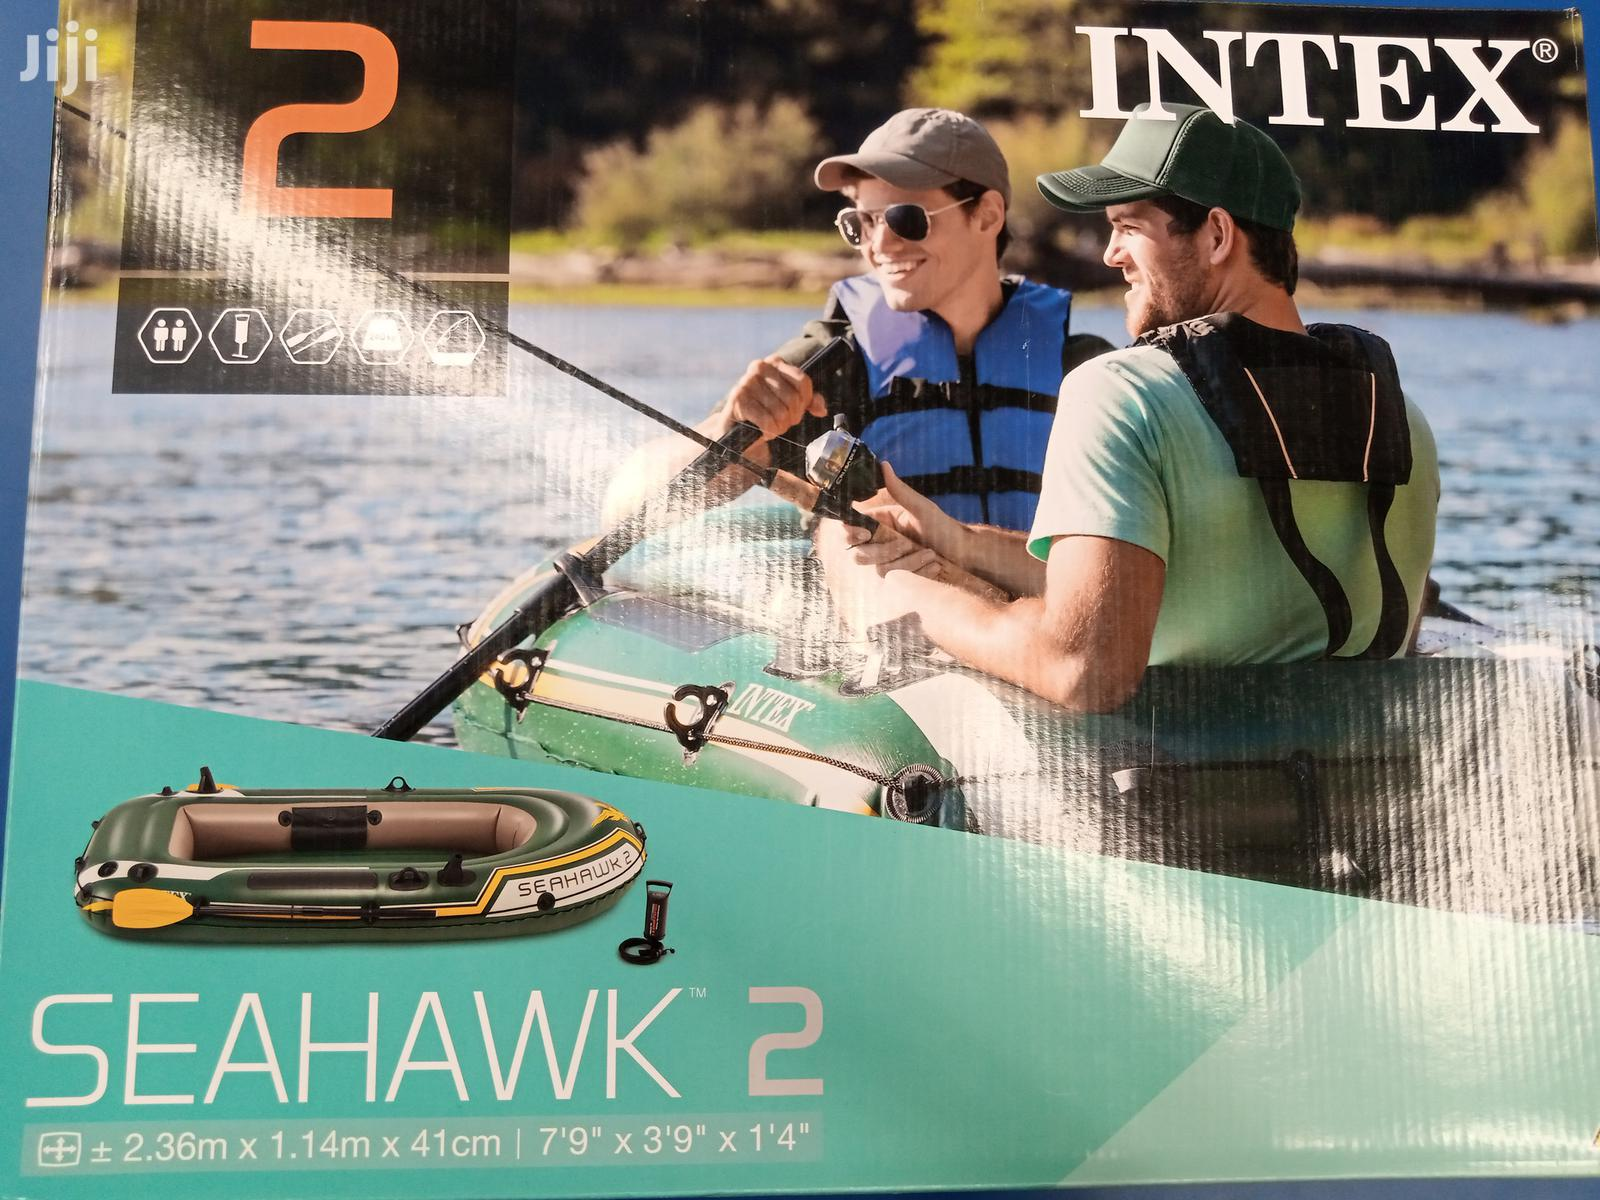 Offer! Inflatable Boats (Intex Seahawk 2)